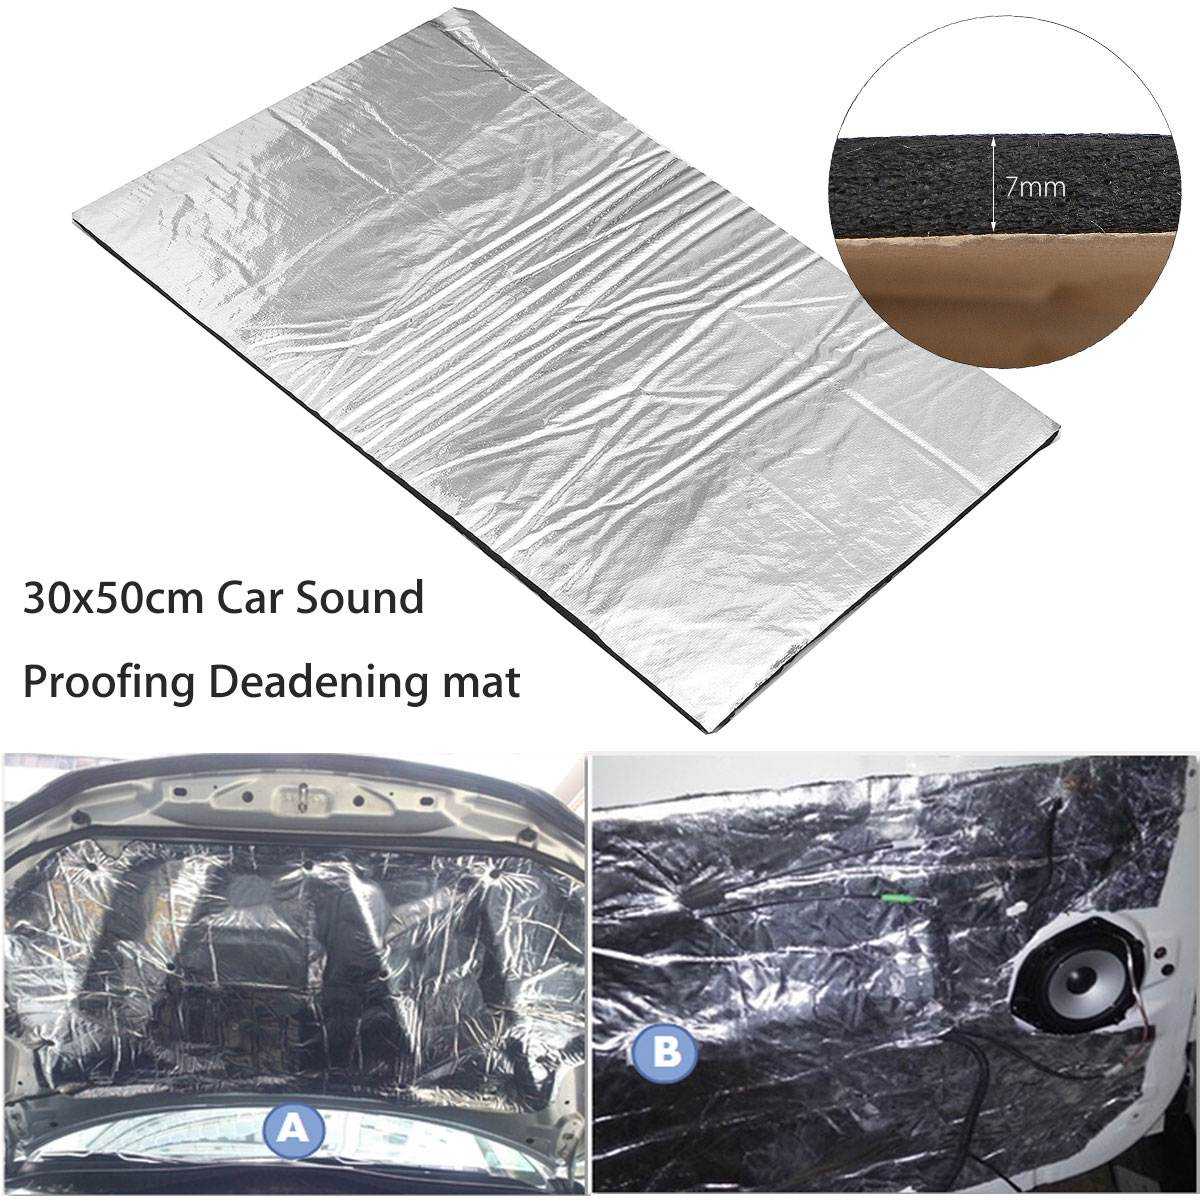 30x50cm Car Glass Fibre Sound Insulation Proofing Deadening 7mm Closed Cell Foam виниловая пластинка cd david bowie ziggy stardust and the spiders from page 3